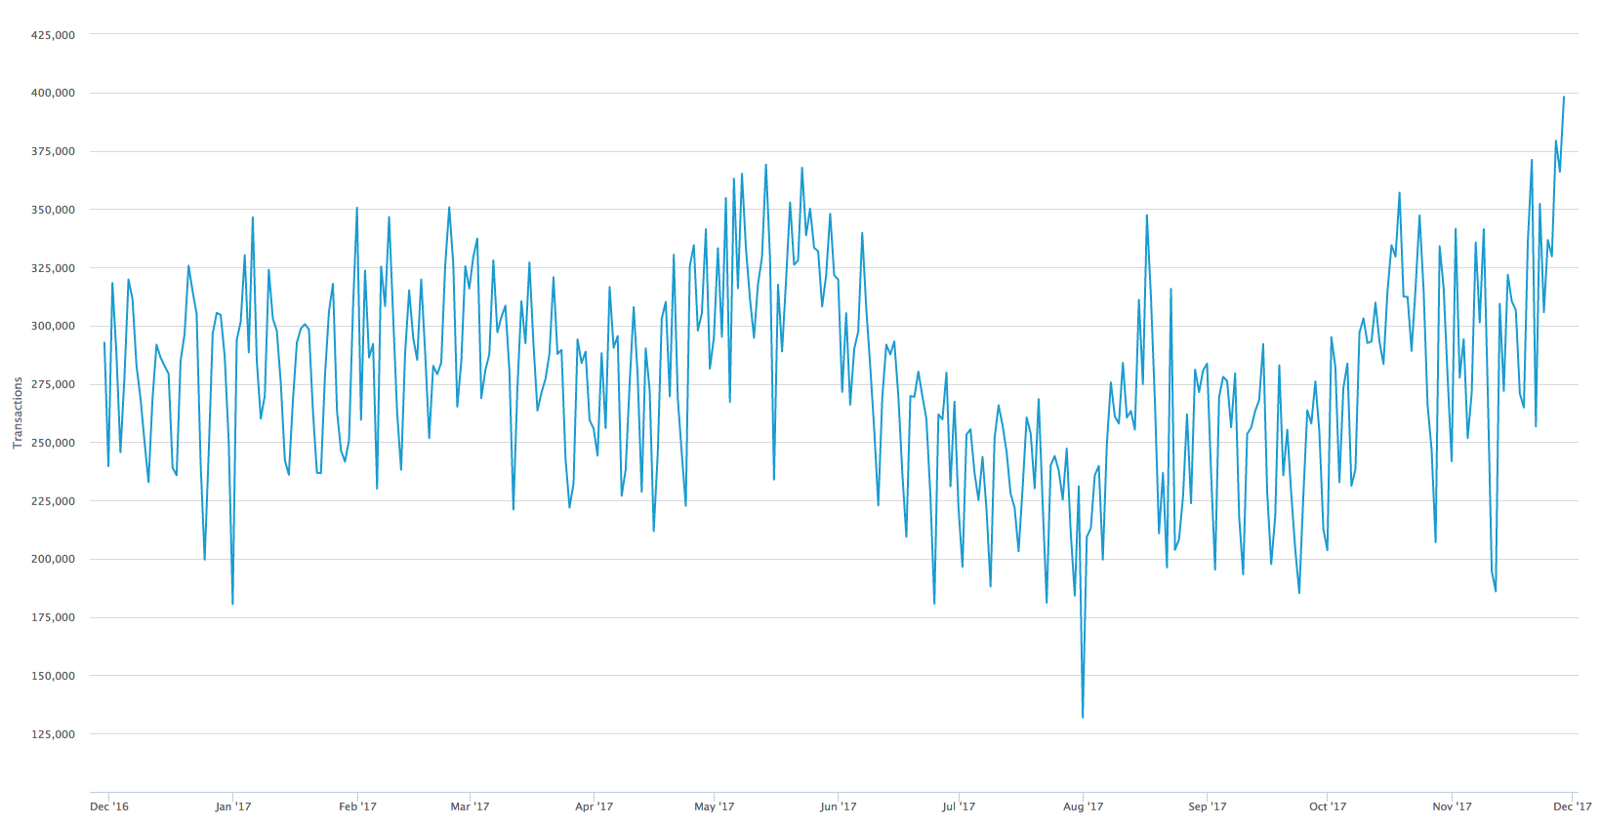 Bitcoin Transactions Per Day Between December 2016 And 2017 Via Blockchain